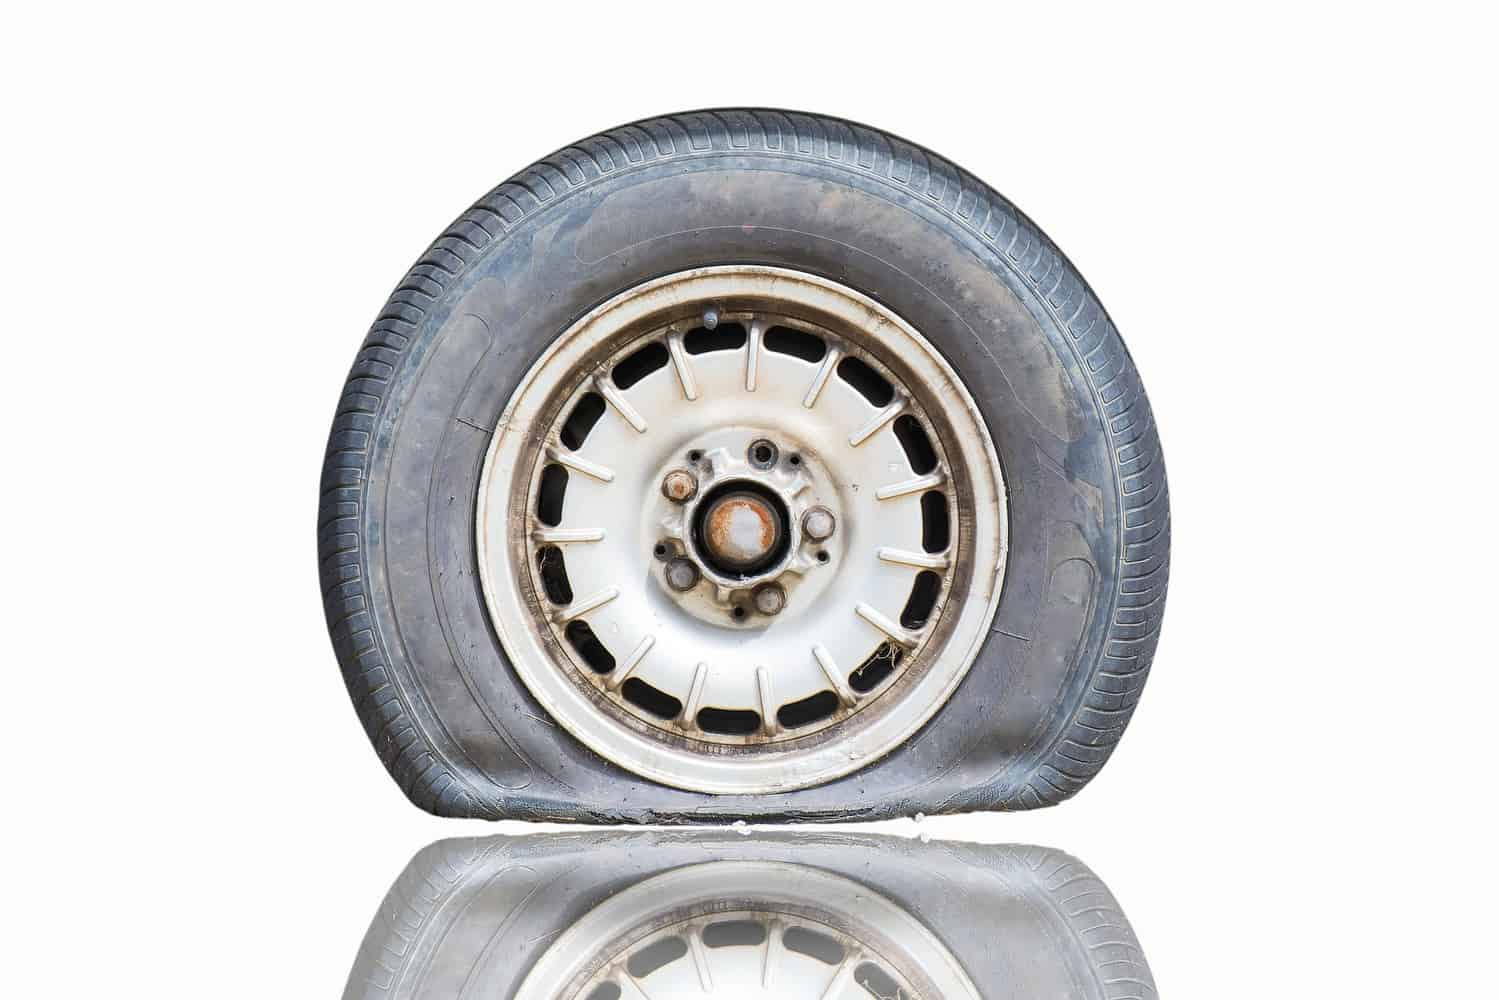 How To Change A Tire On A Single Axle Travel Trailer